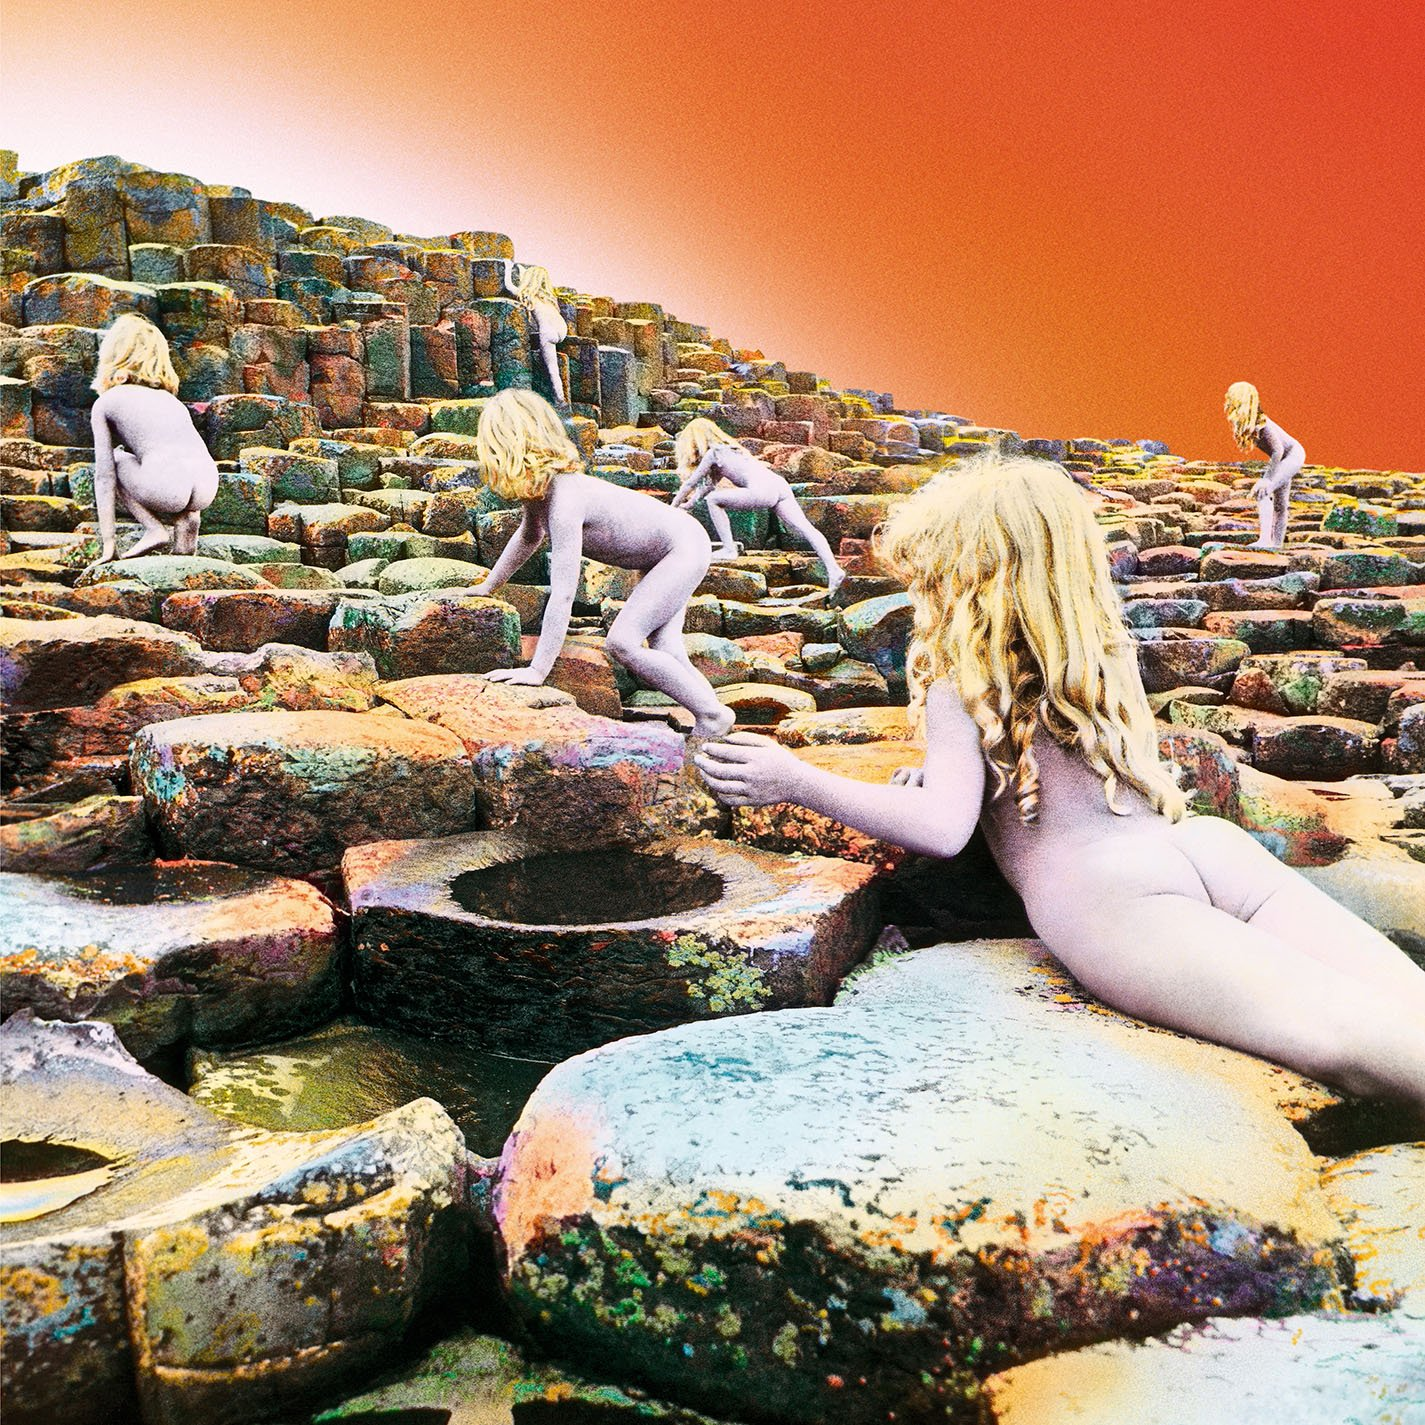 Report: Facebook Bans Led Zeppelin Houses of the Holy